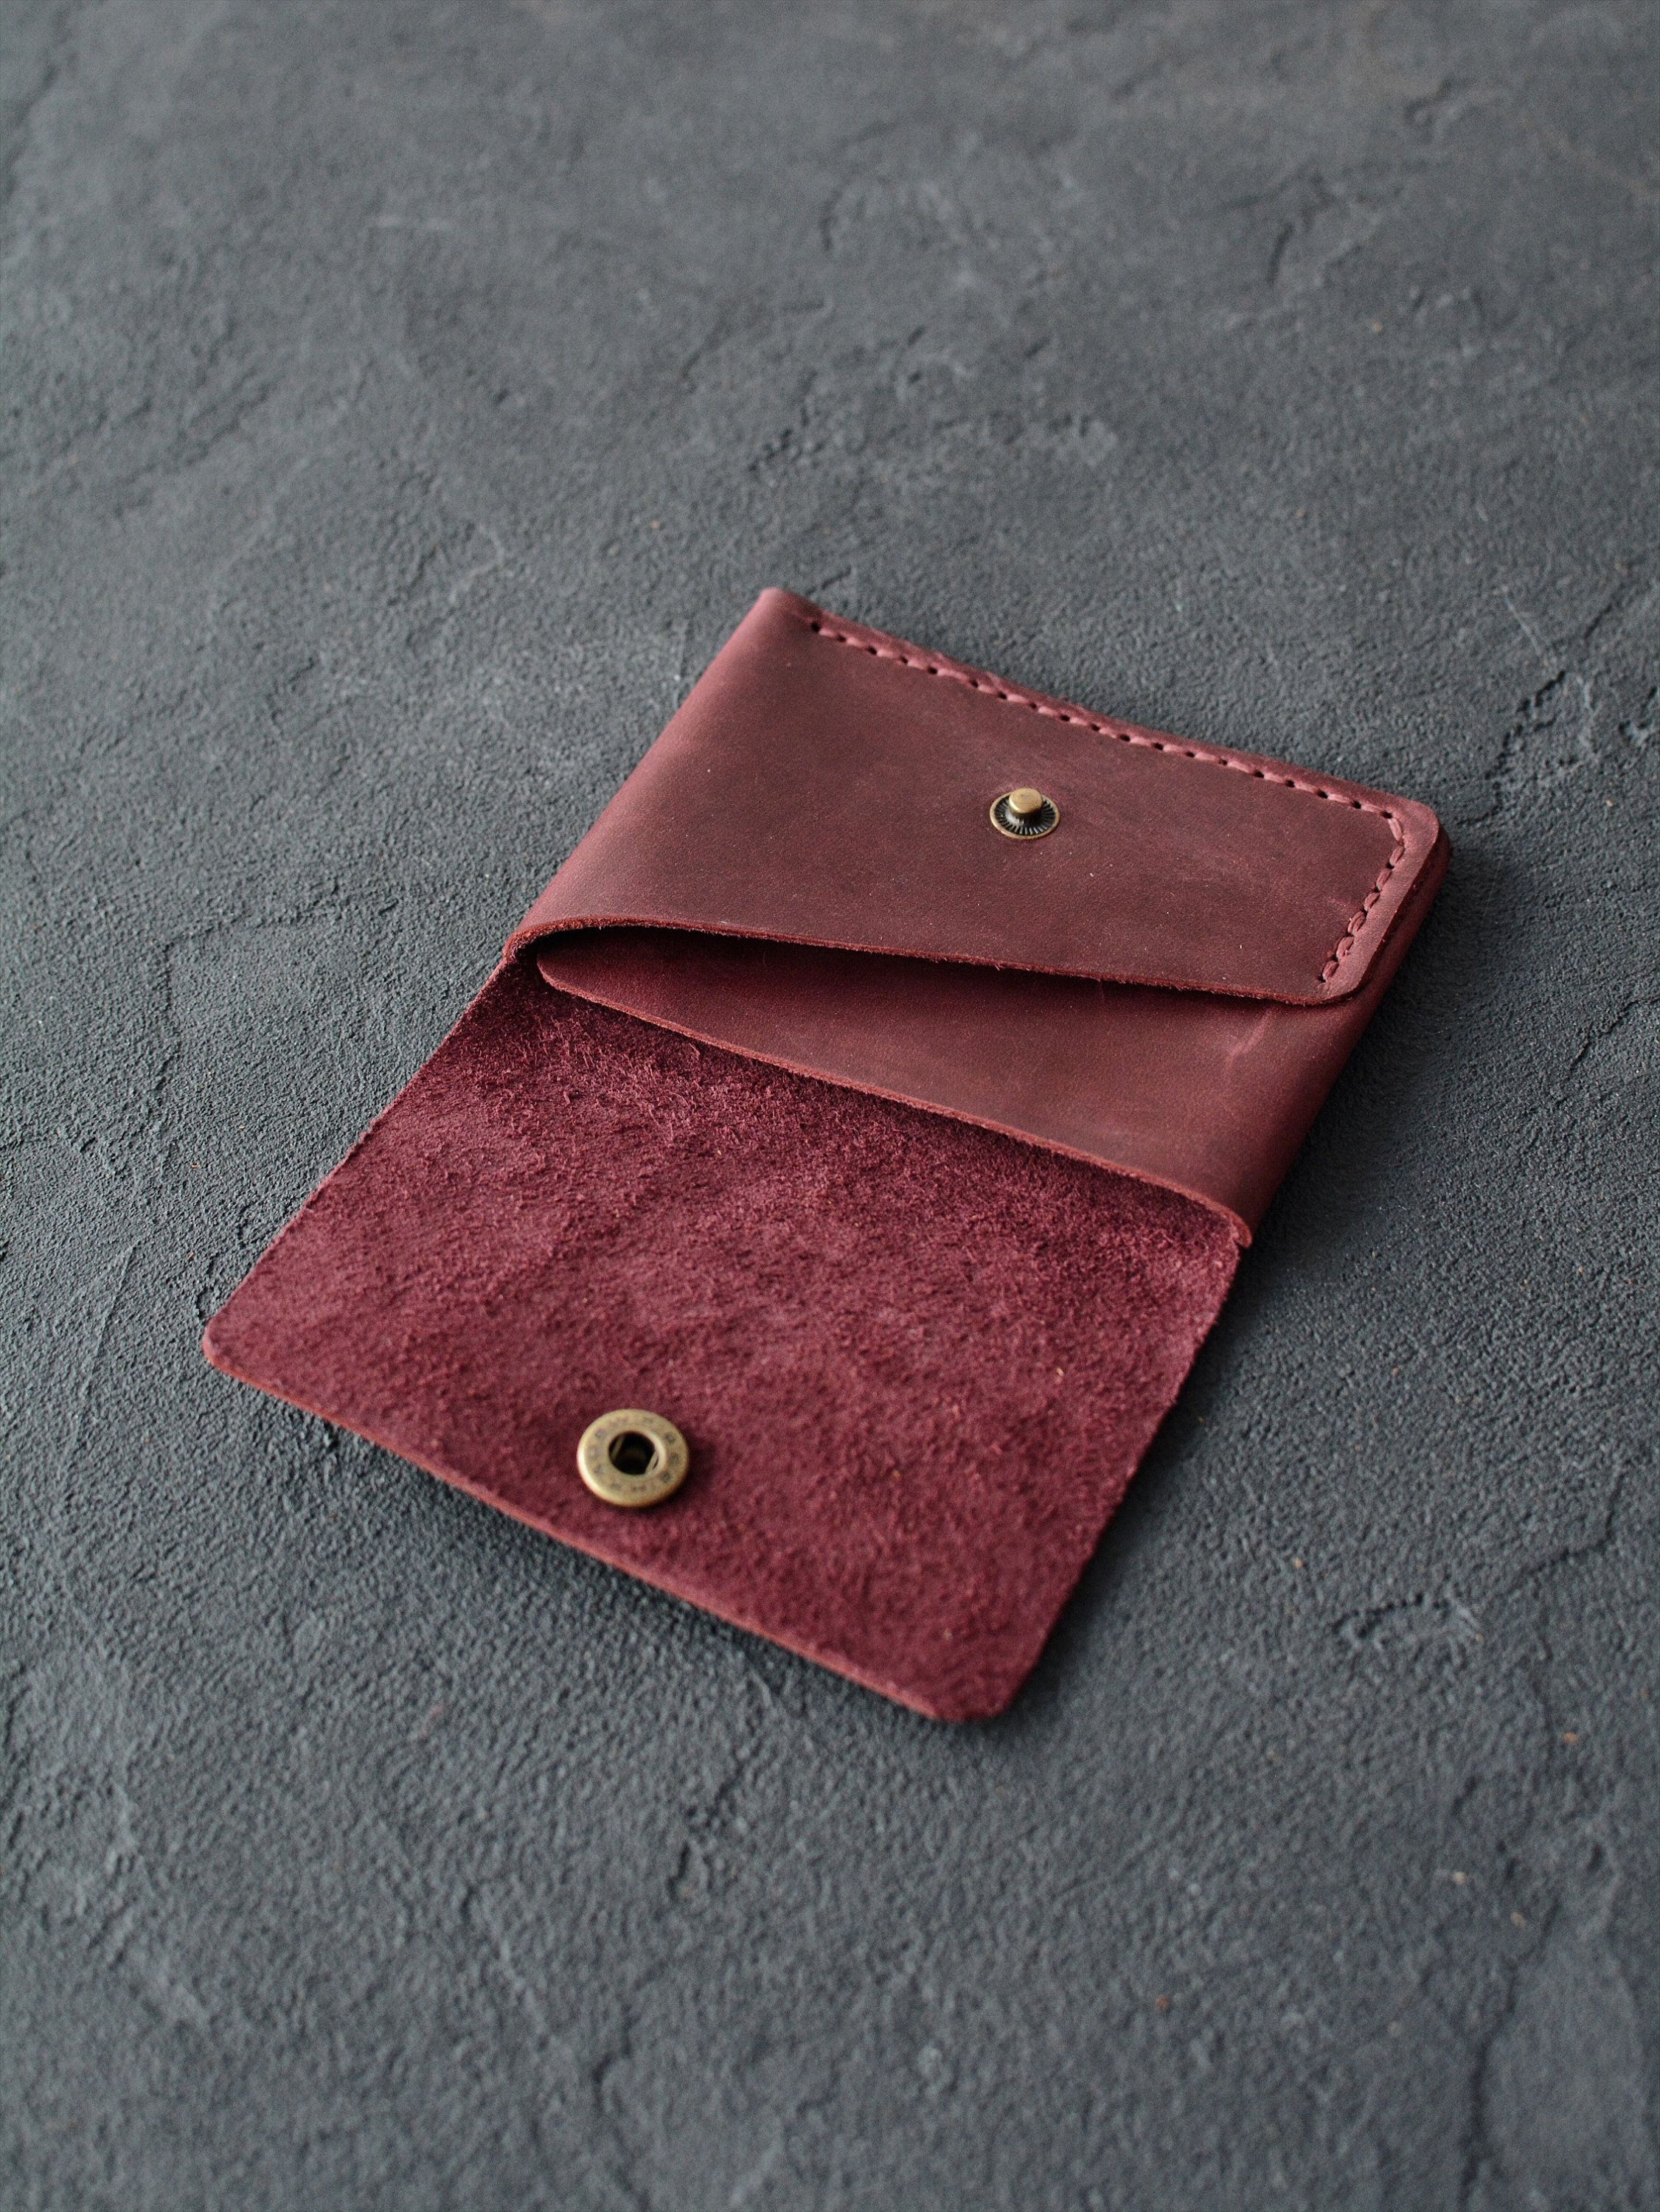 Leather wallet compact purse leather wallet leather